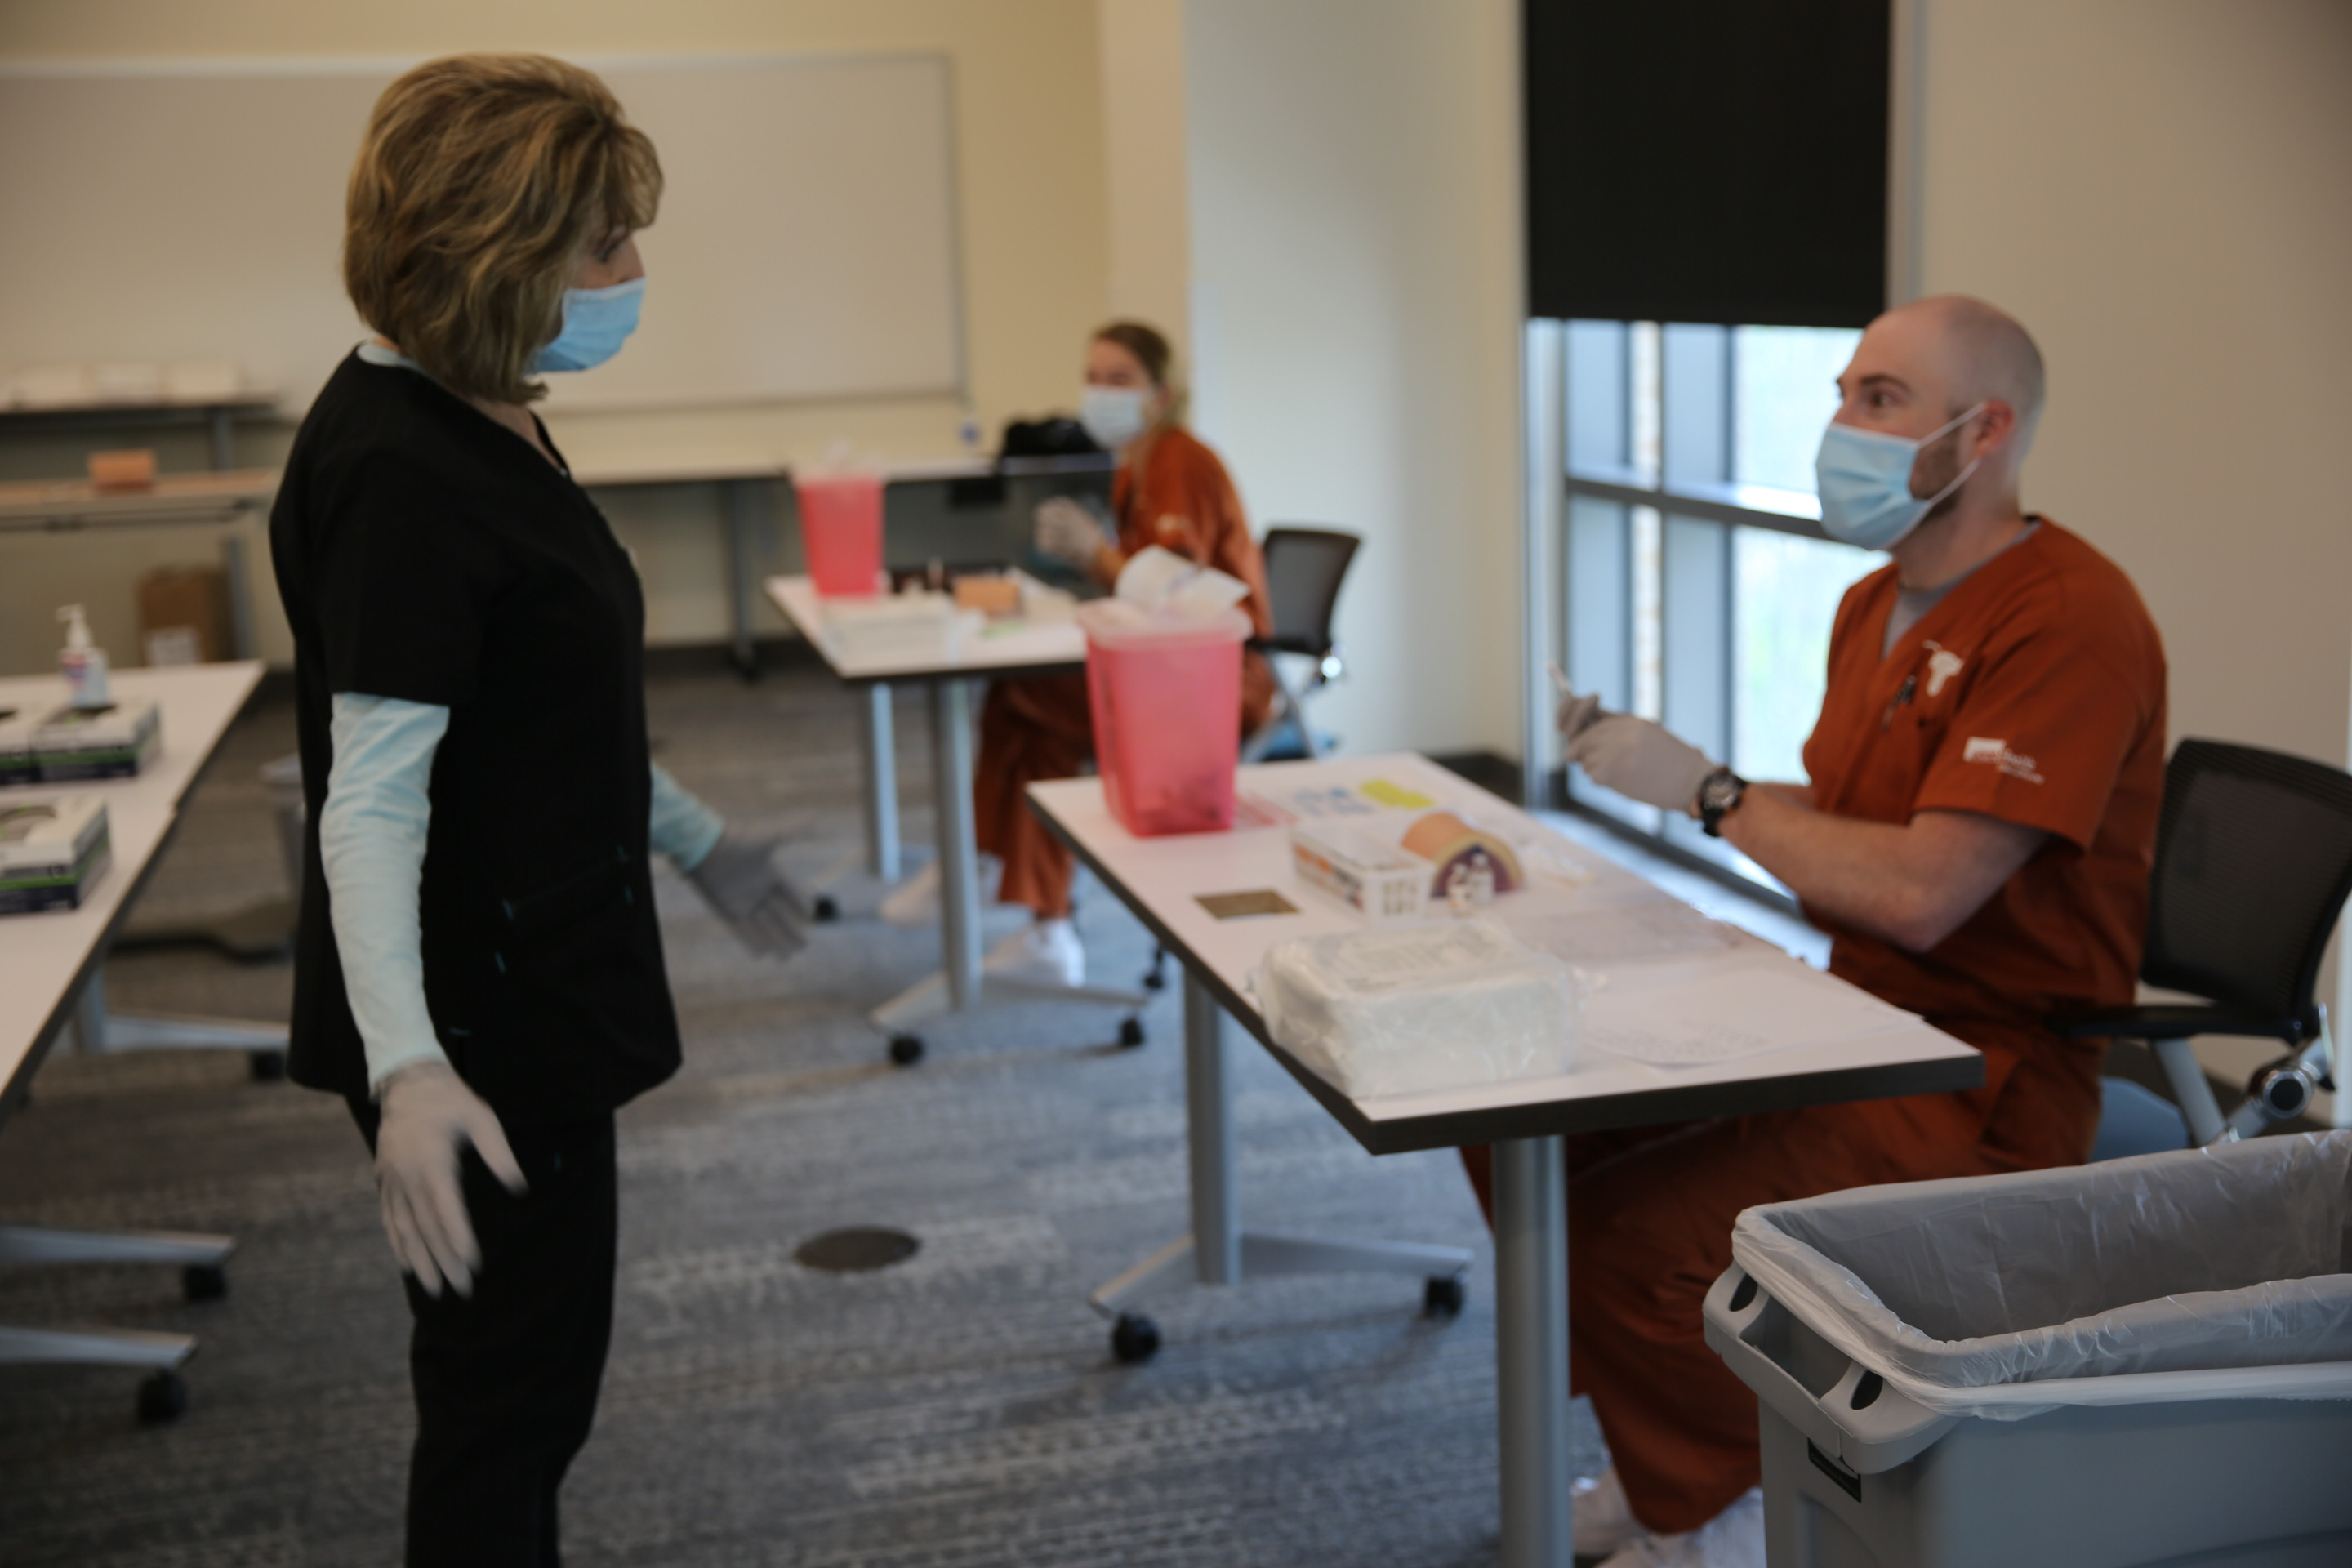 SON faculty member teaches first semester BSN students medication administration skills.